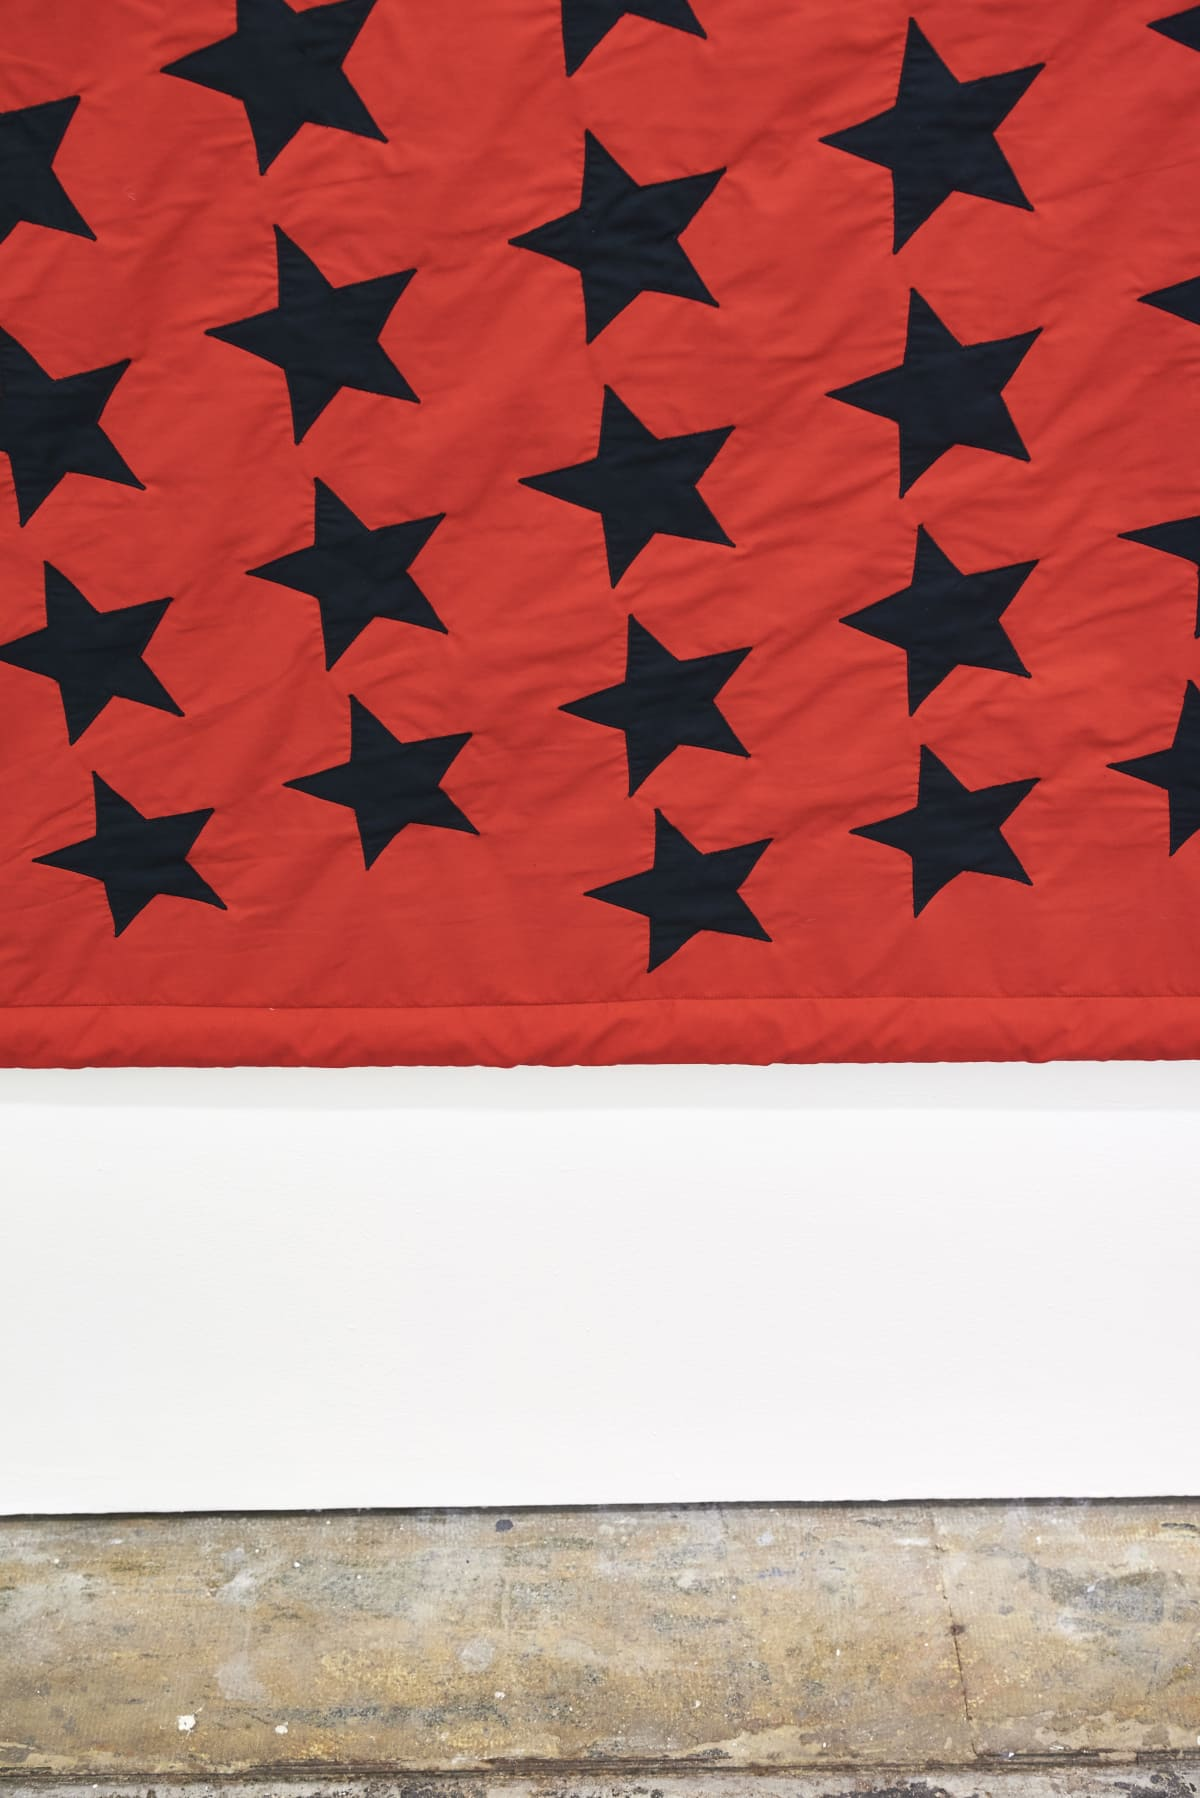 Larry Achiampong PAN AFRICAN FLAG FOR THE RELIC TRAVELLERS' ALLIANCE, 2017 Appliqué Flag (detail) 200 x 300 cm Courtesy of the artist. Commissioned by Somerset House.